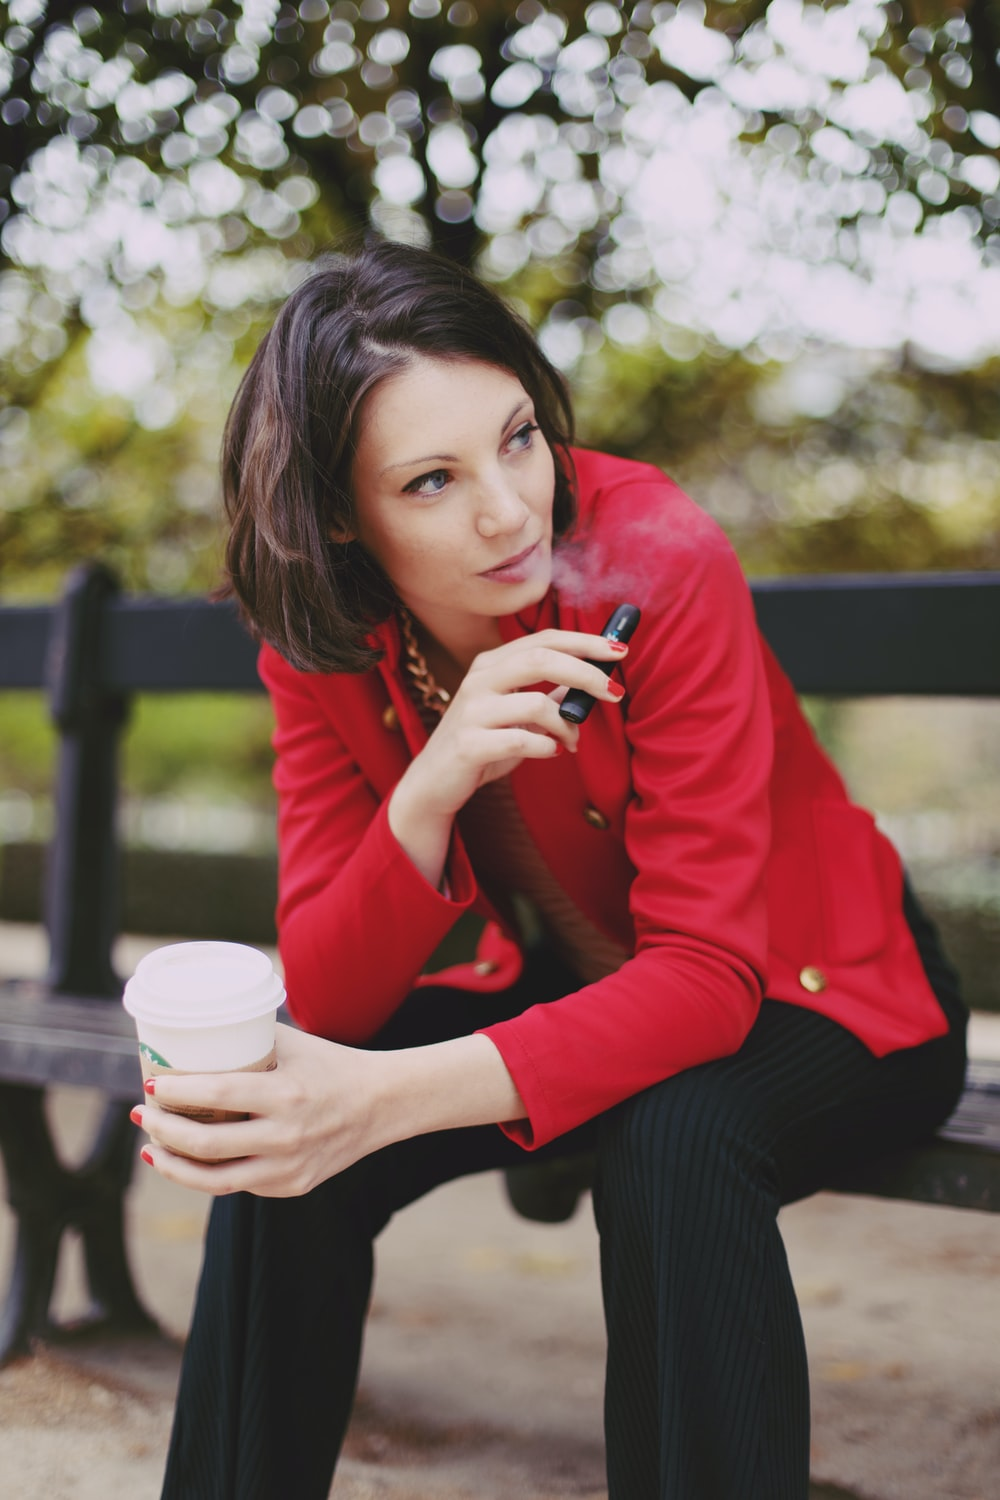 woman in red long sleeve shirt holding white disposable cup